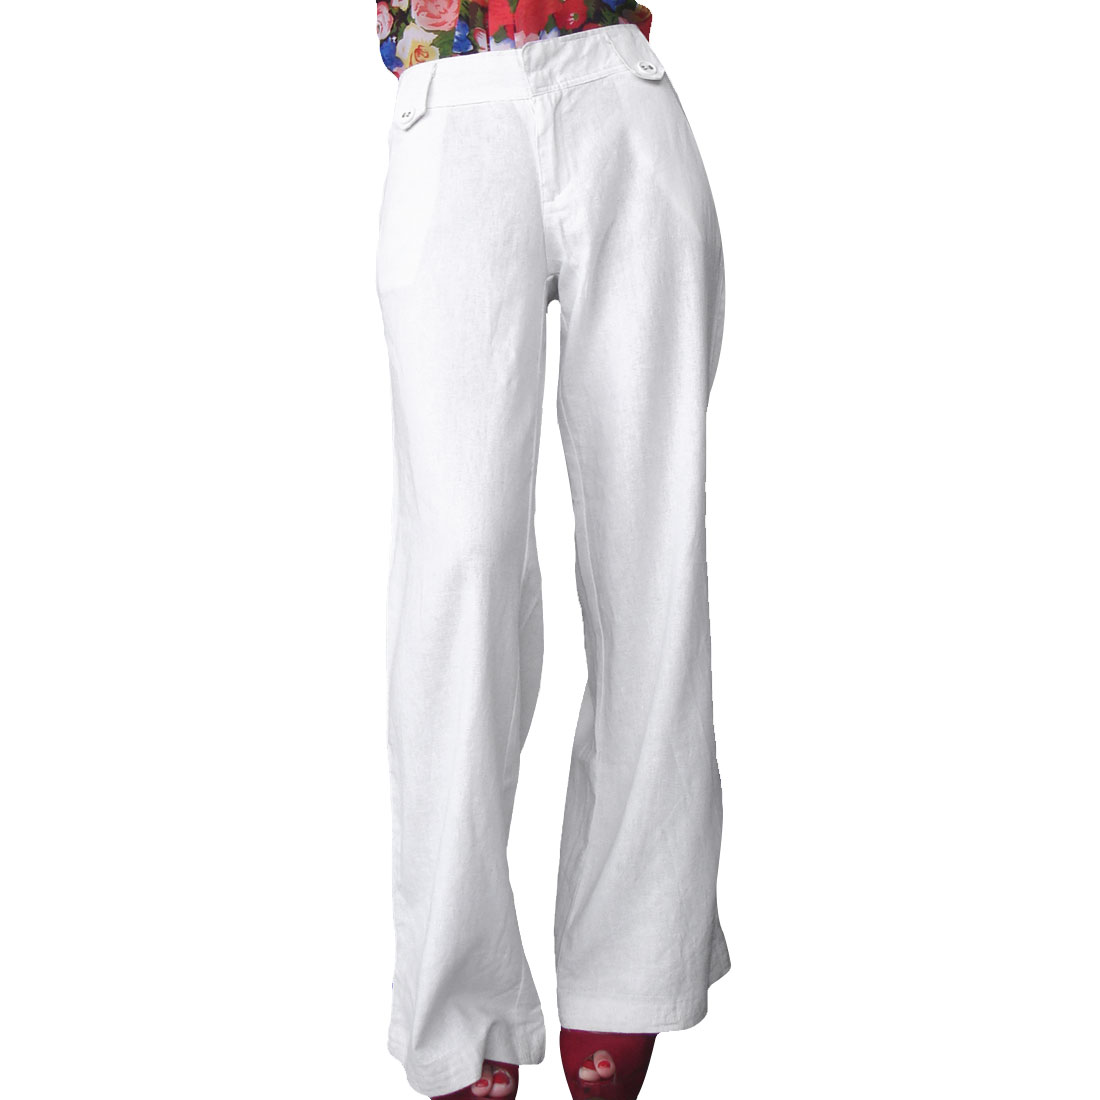 Casual Hip Patch Pockets Hook Closure Zippered Pants White XL for Woman